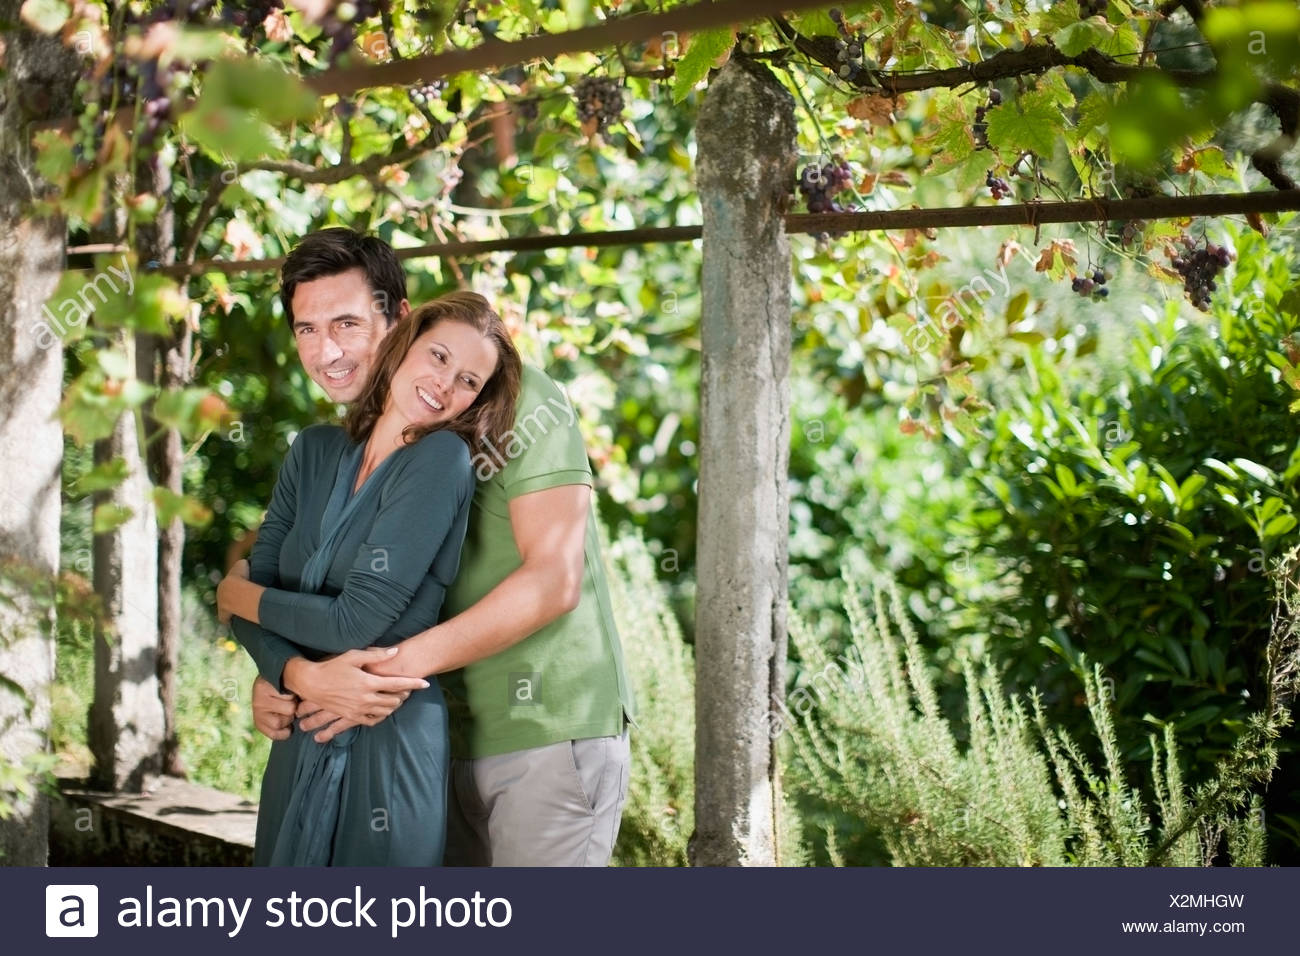 Two lovers hugging in nature - Stock Image